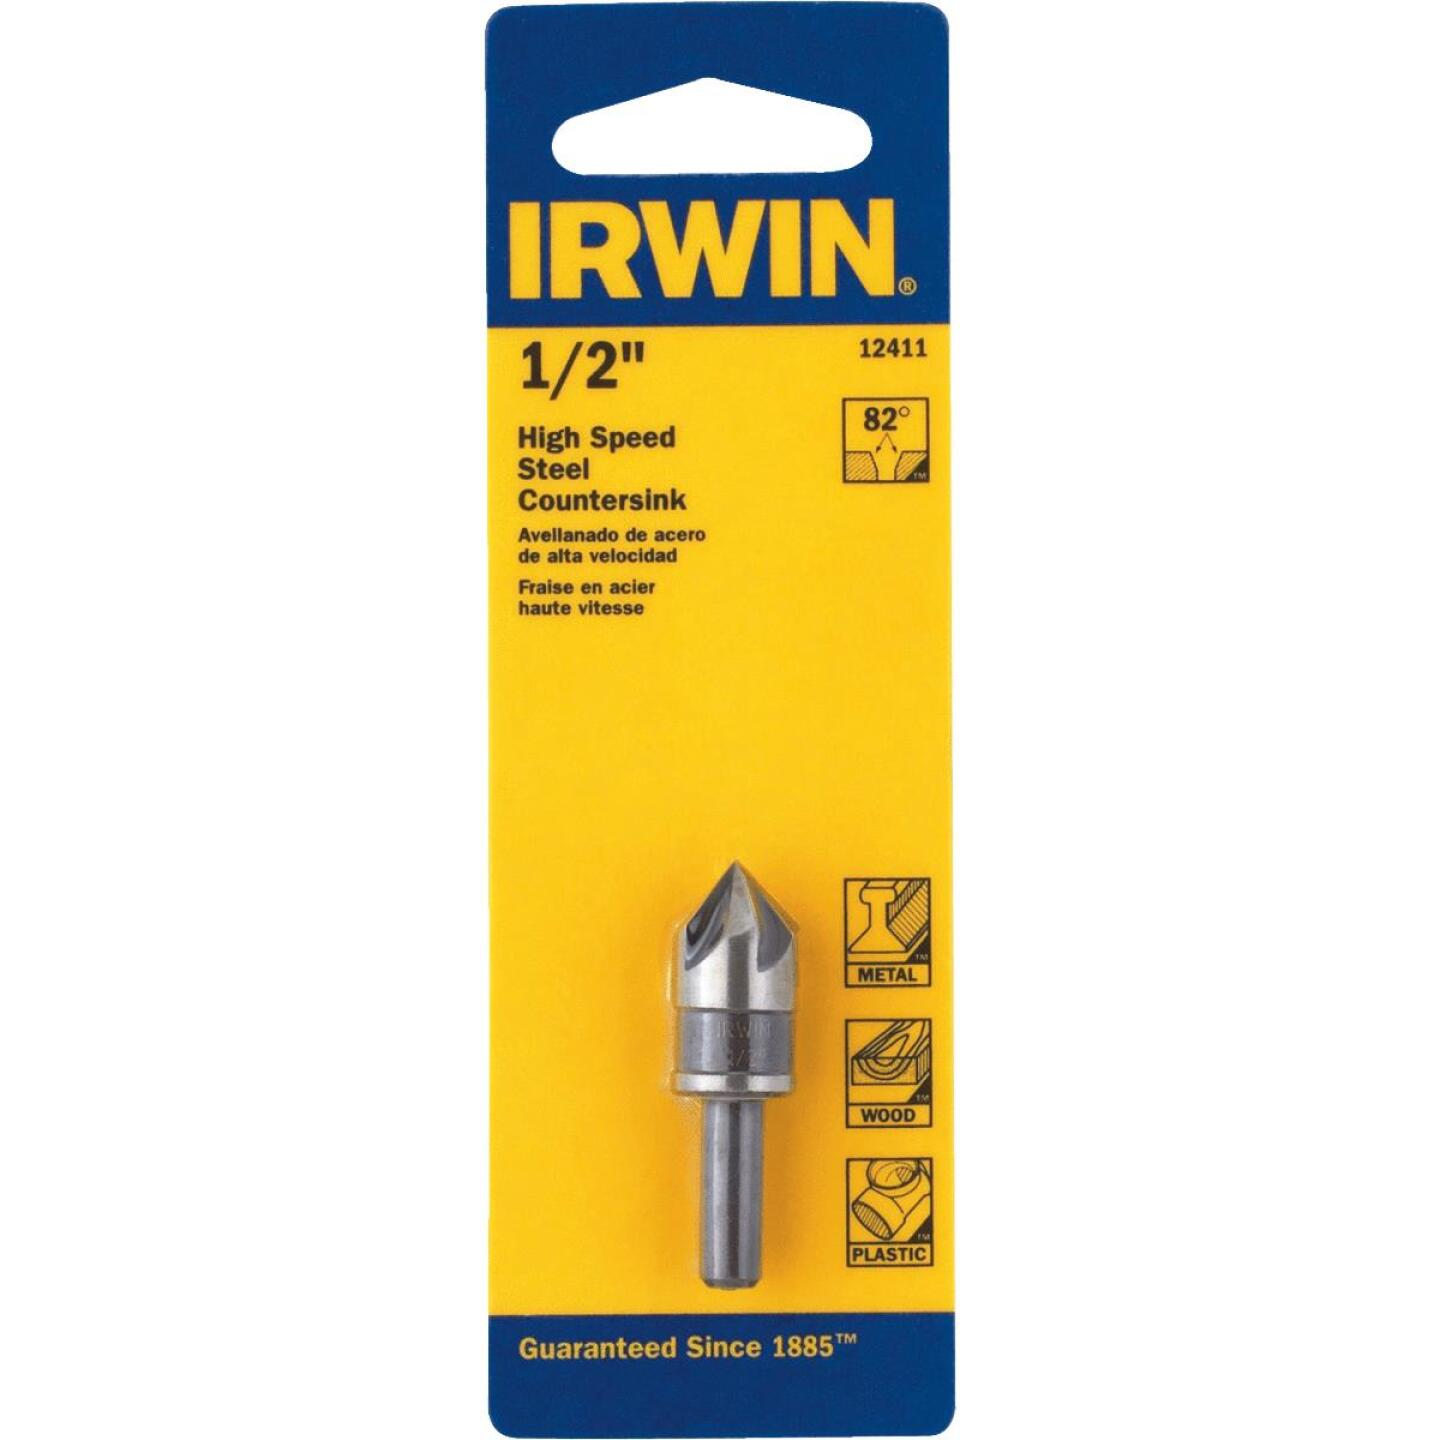 Irwin 1/2 In. Round Most Machineable Metals Countersink Image 2